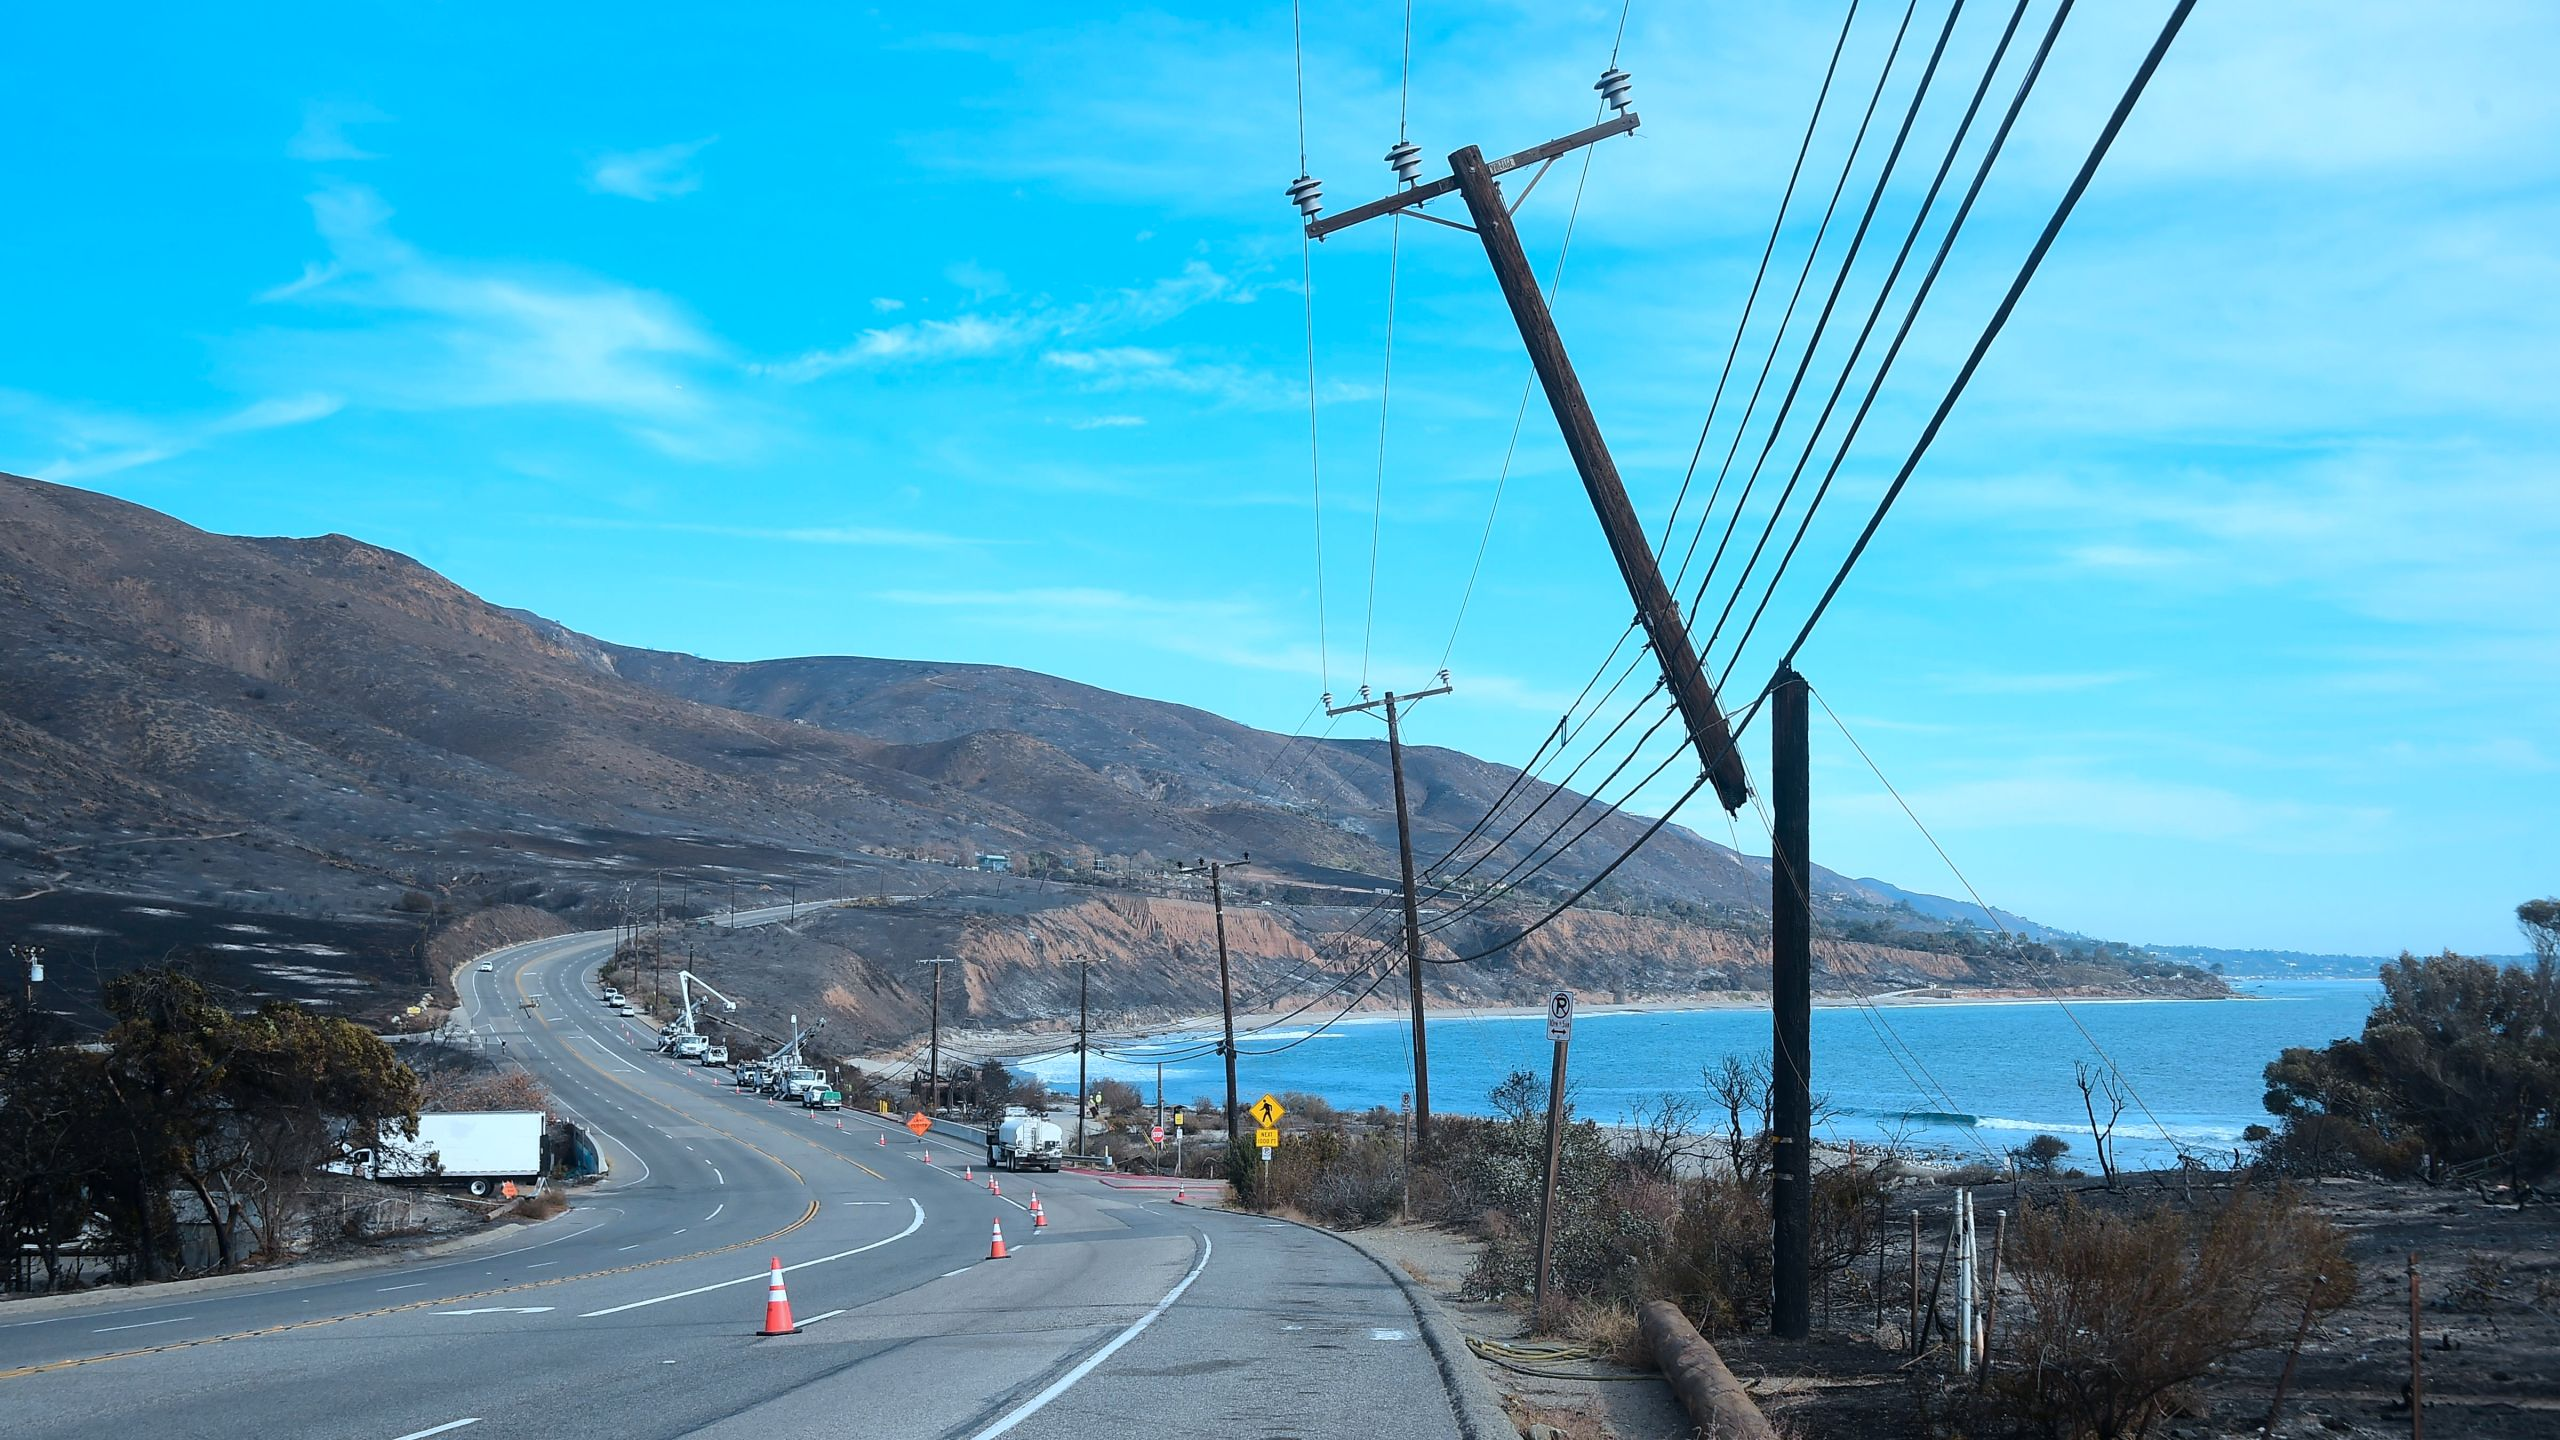 Power lines are repaired along the Pacific Coast Highway amid the blackened and charred hills from the Woolsey Fire in Malibu on Nov. 15, 2018. (Credit: FREDERIC J. BROWN/AFP/Getty Images)